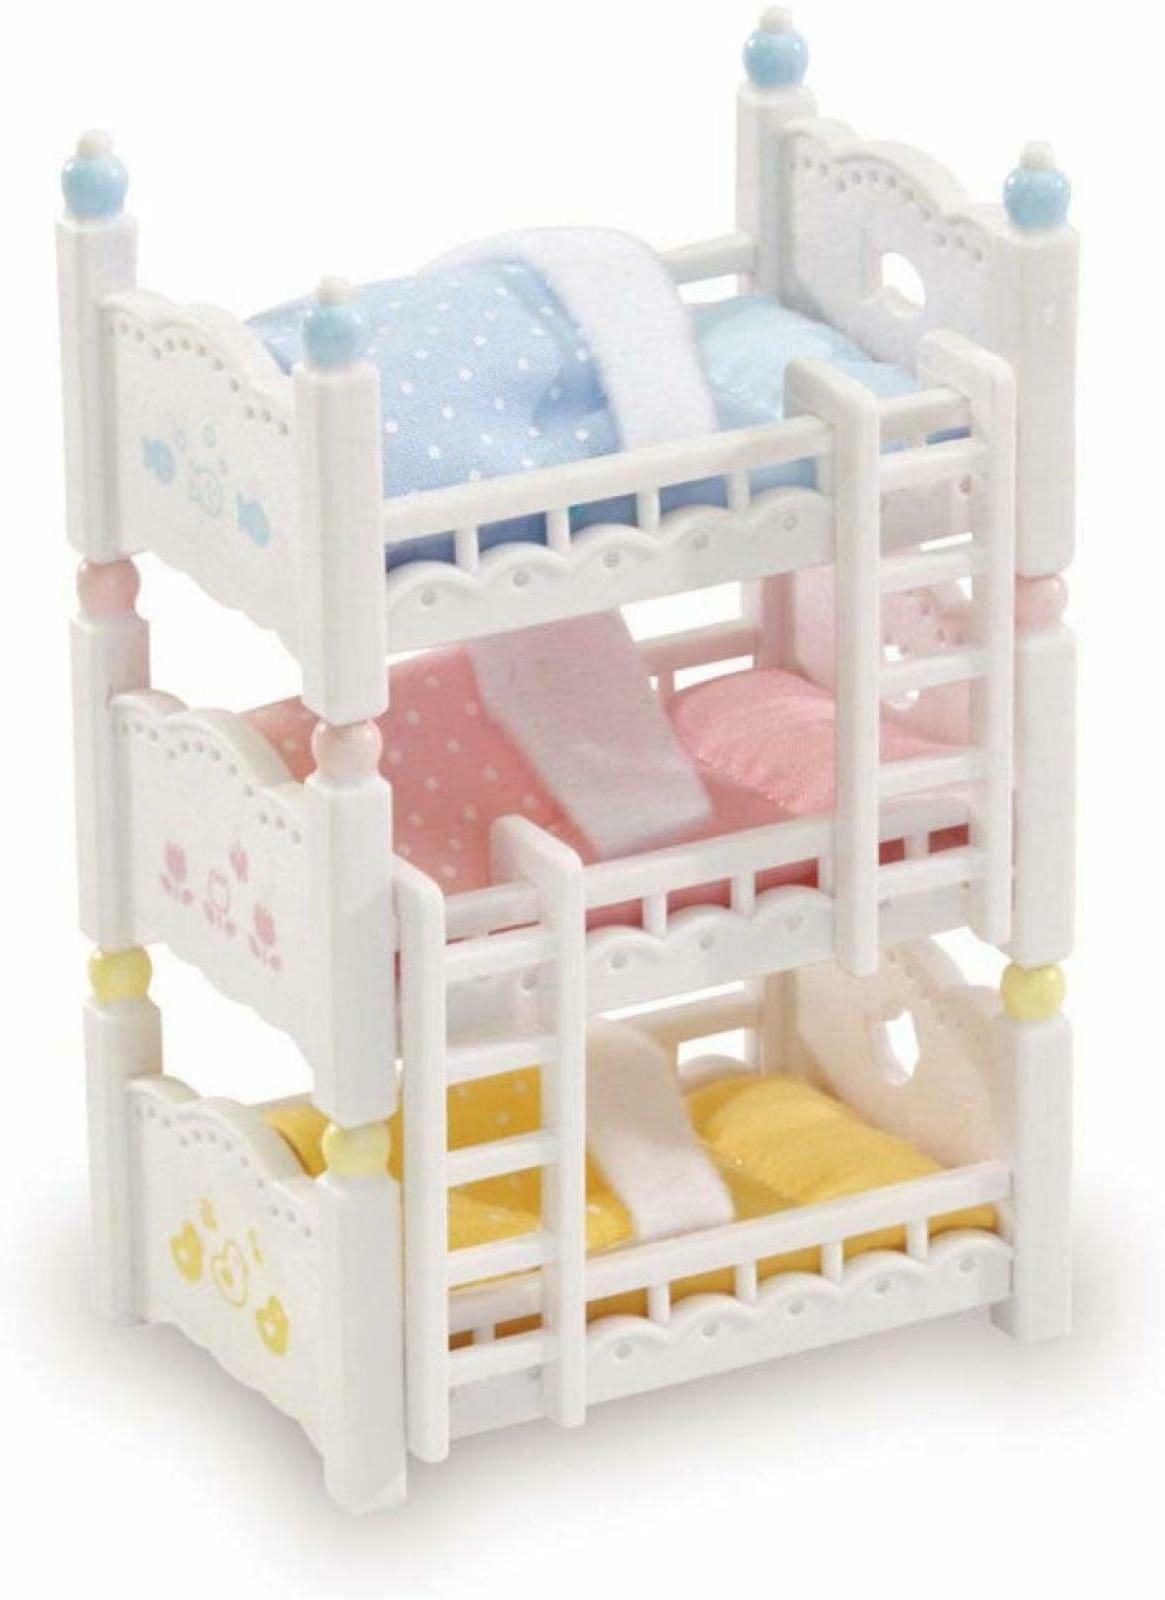 Calico Critters Triple Baby Bunk Beds Bedroom Accessories To